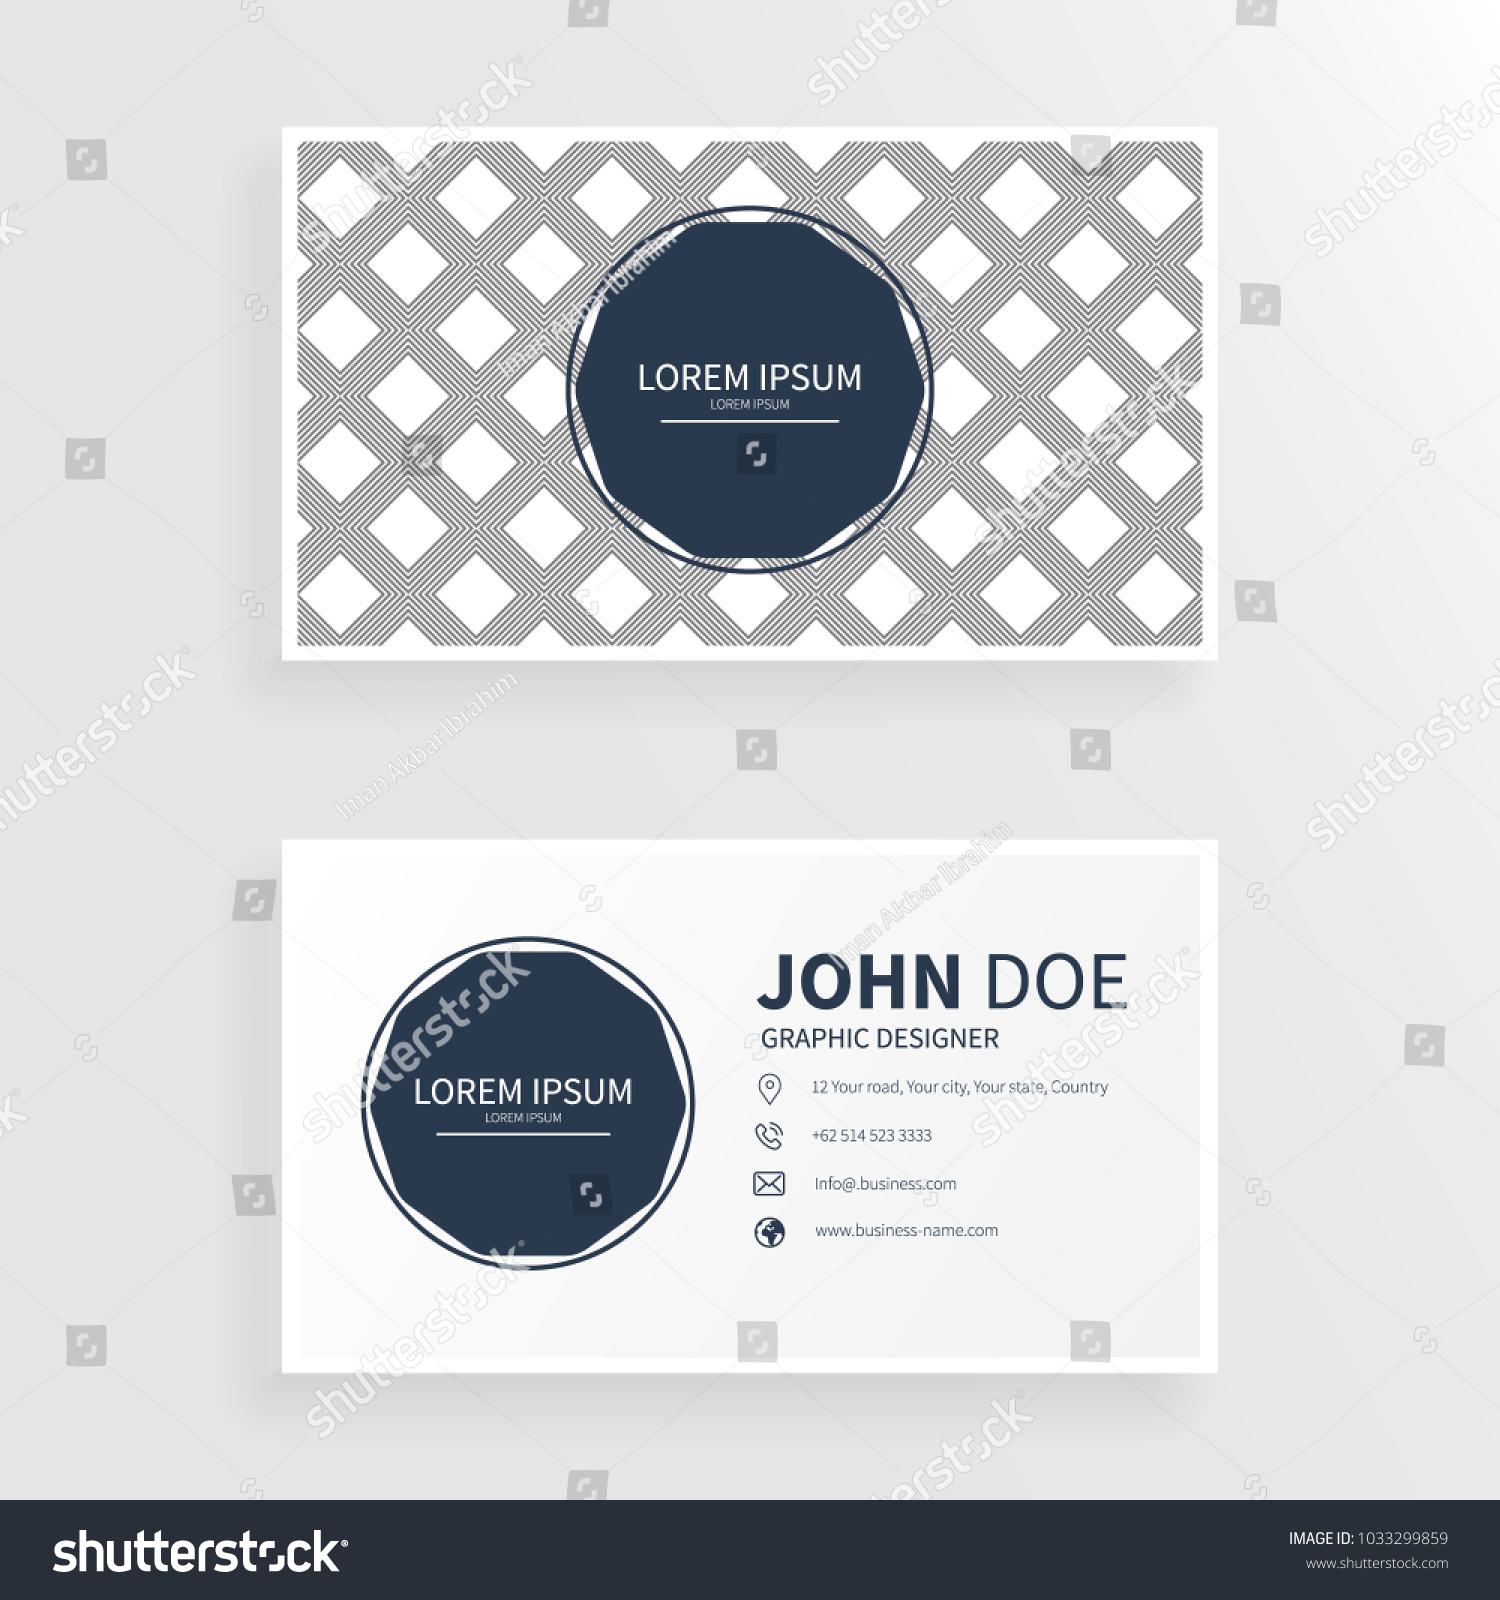 Business Card Square Pattern Stock Vector 1033299859 - Shutterstock